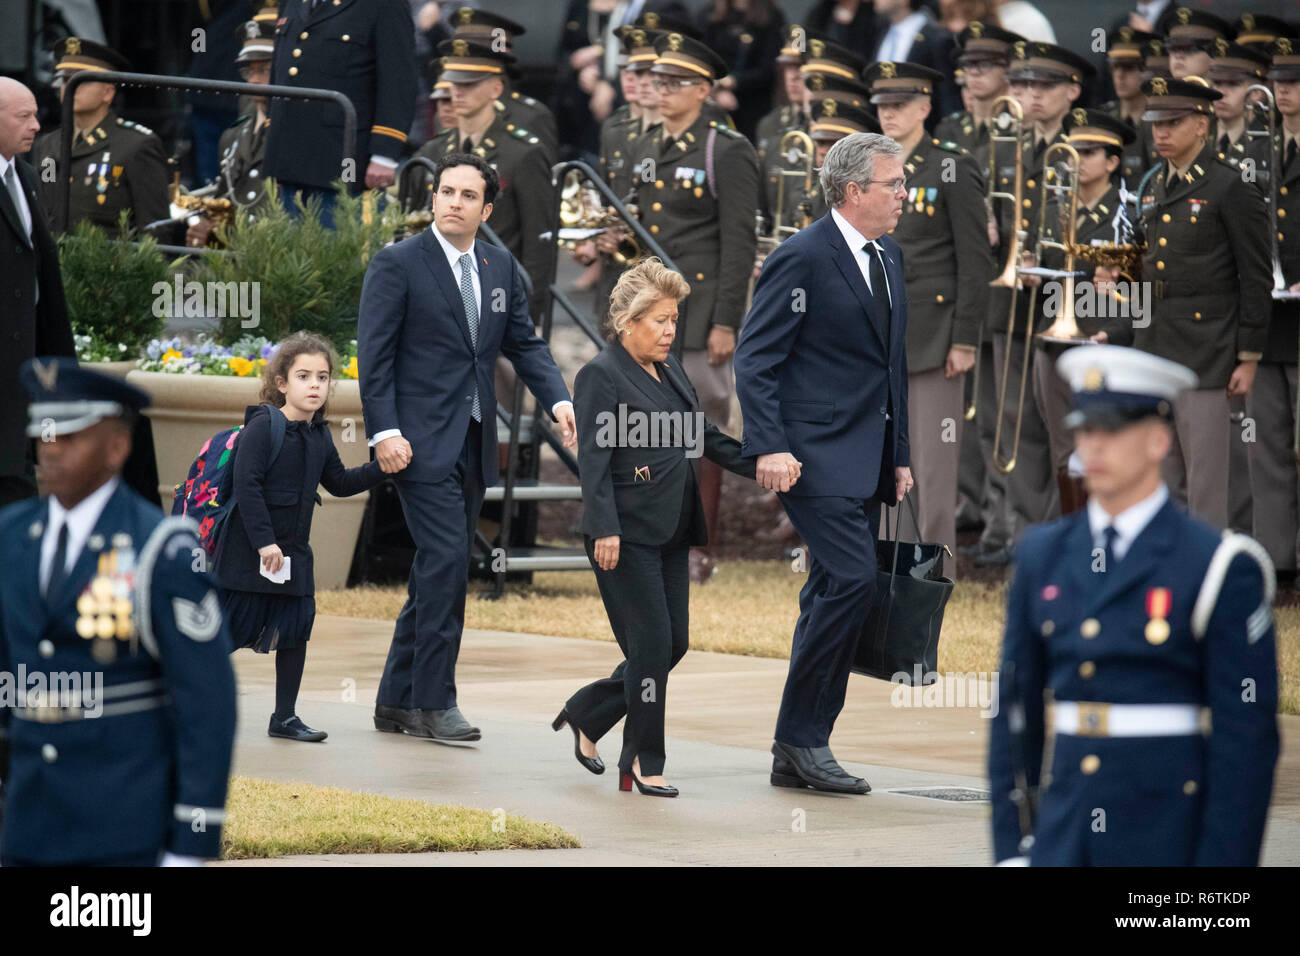 Former Florida governor Jeb Bush and wife Paloma arrive at Texas A&M University with the train carrying the casket of former President George H.W. Bush before burial at the nearby George Bush Library. Stock Photo